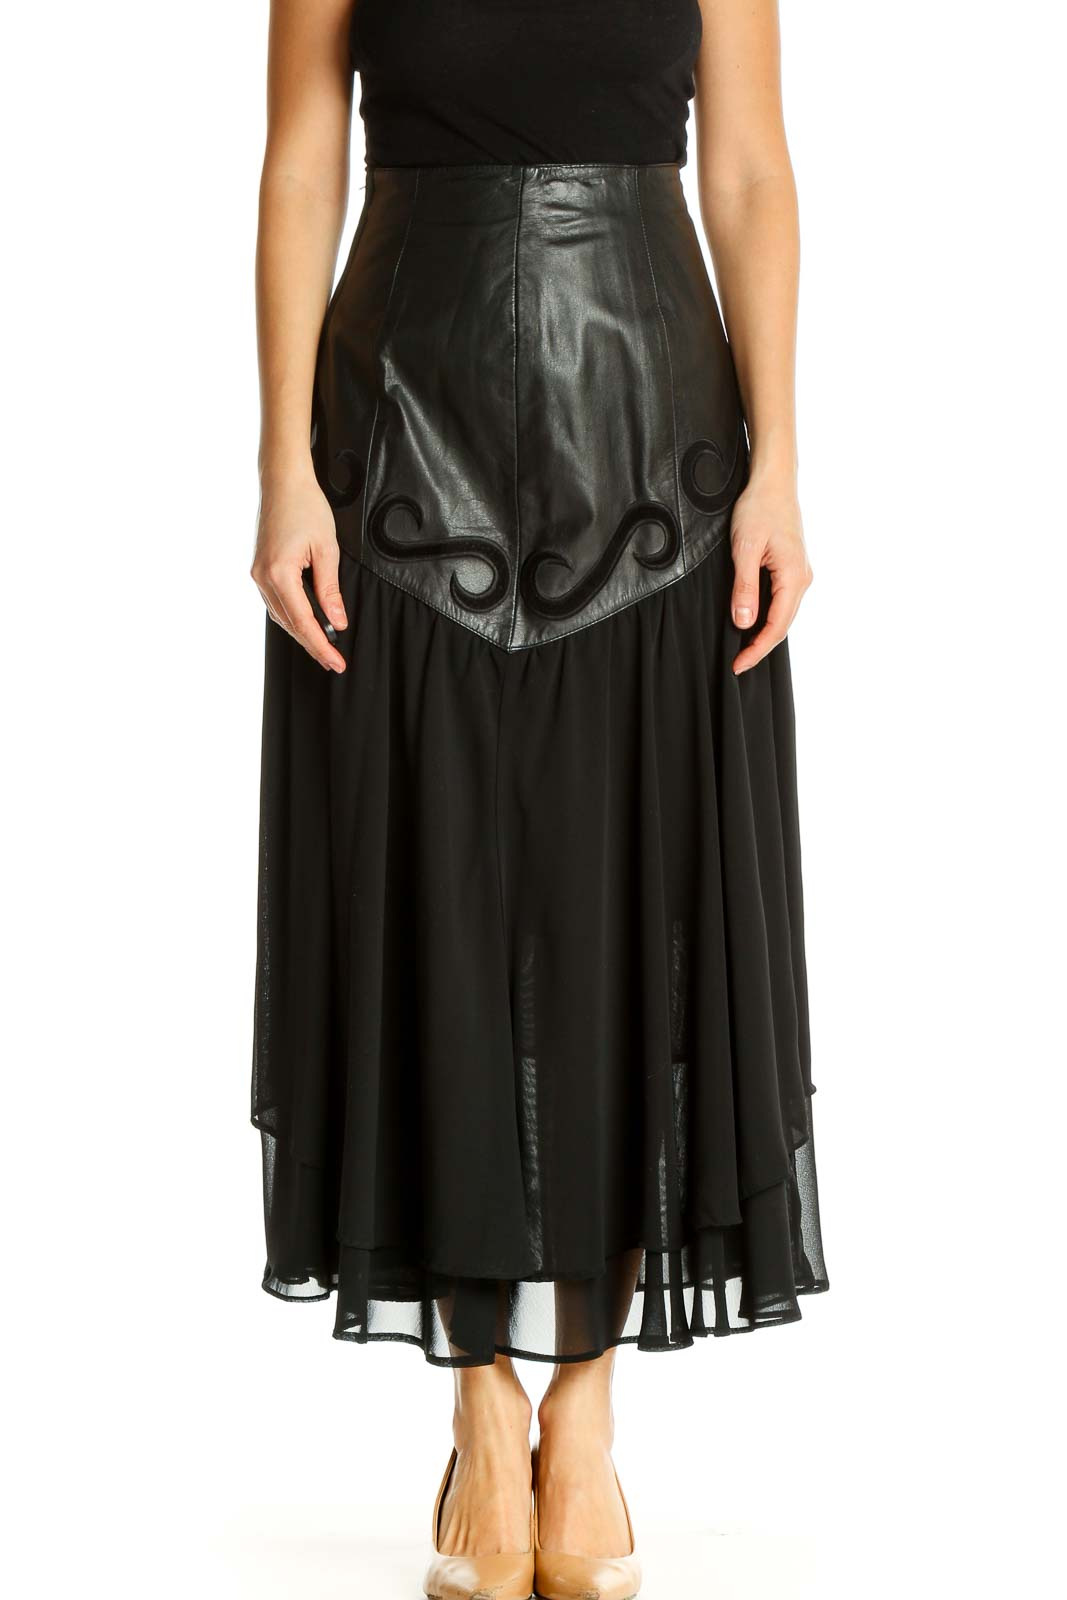 Black Solid Casual A-Line Skirt Front